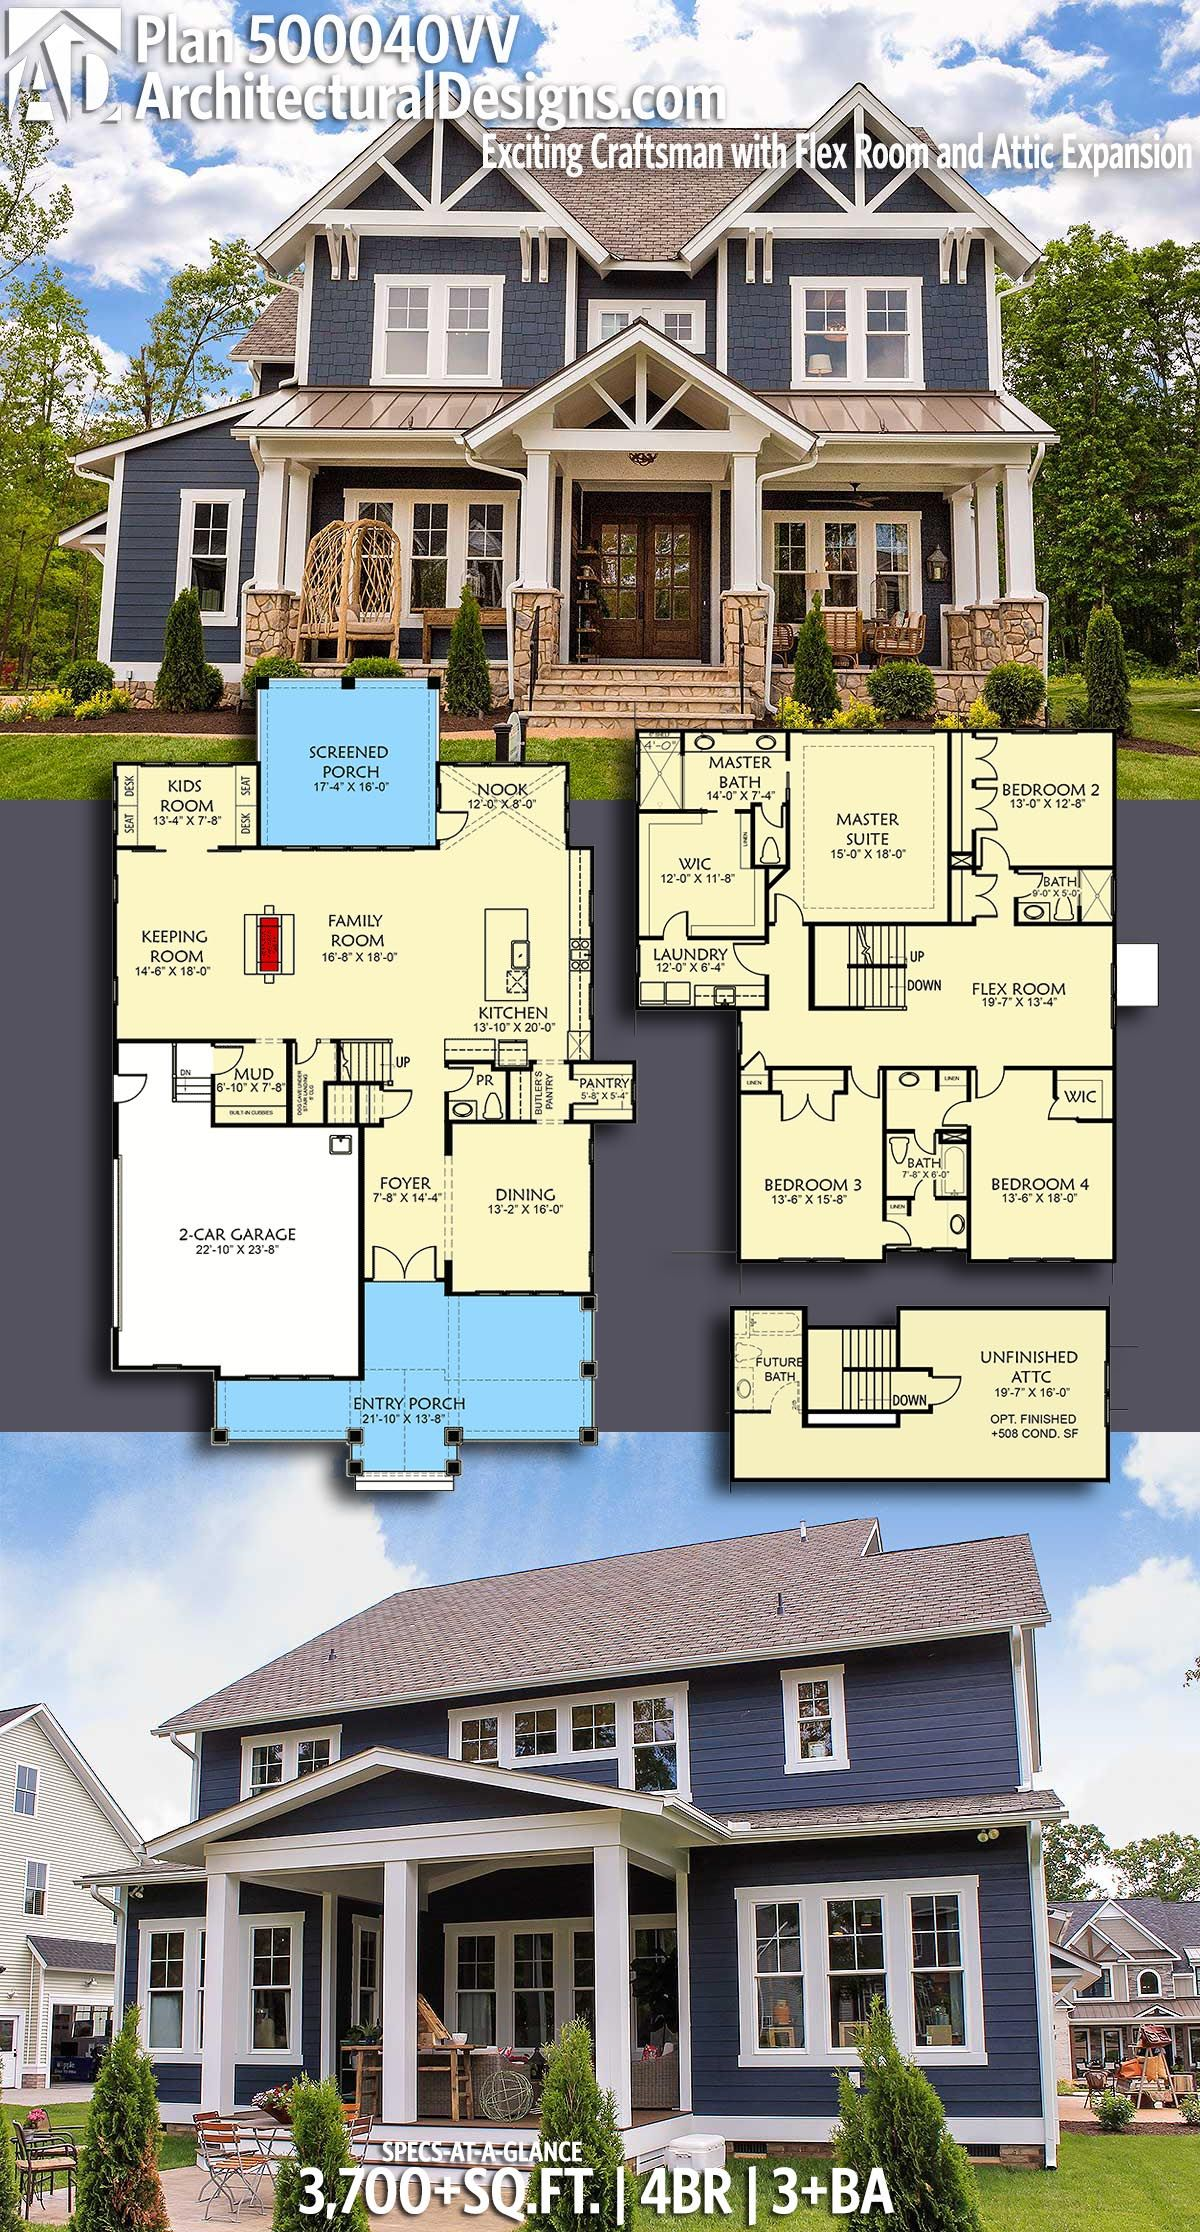 Plan 500040vv Exciting Craftsman With Flex Room And Attic Expansion Craftsman House Plans Flex Room House Plans